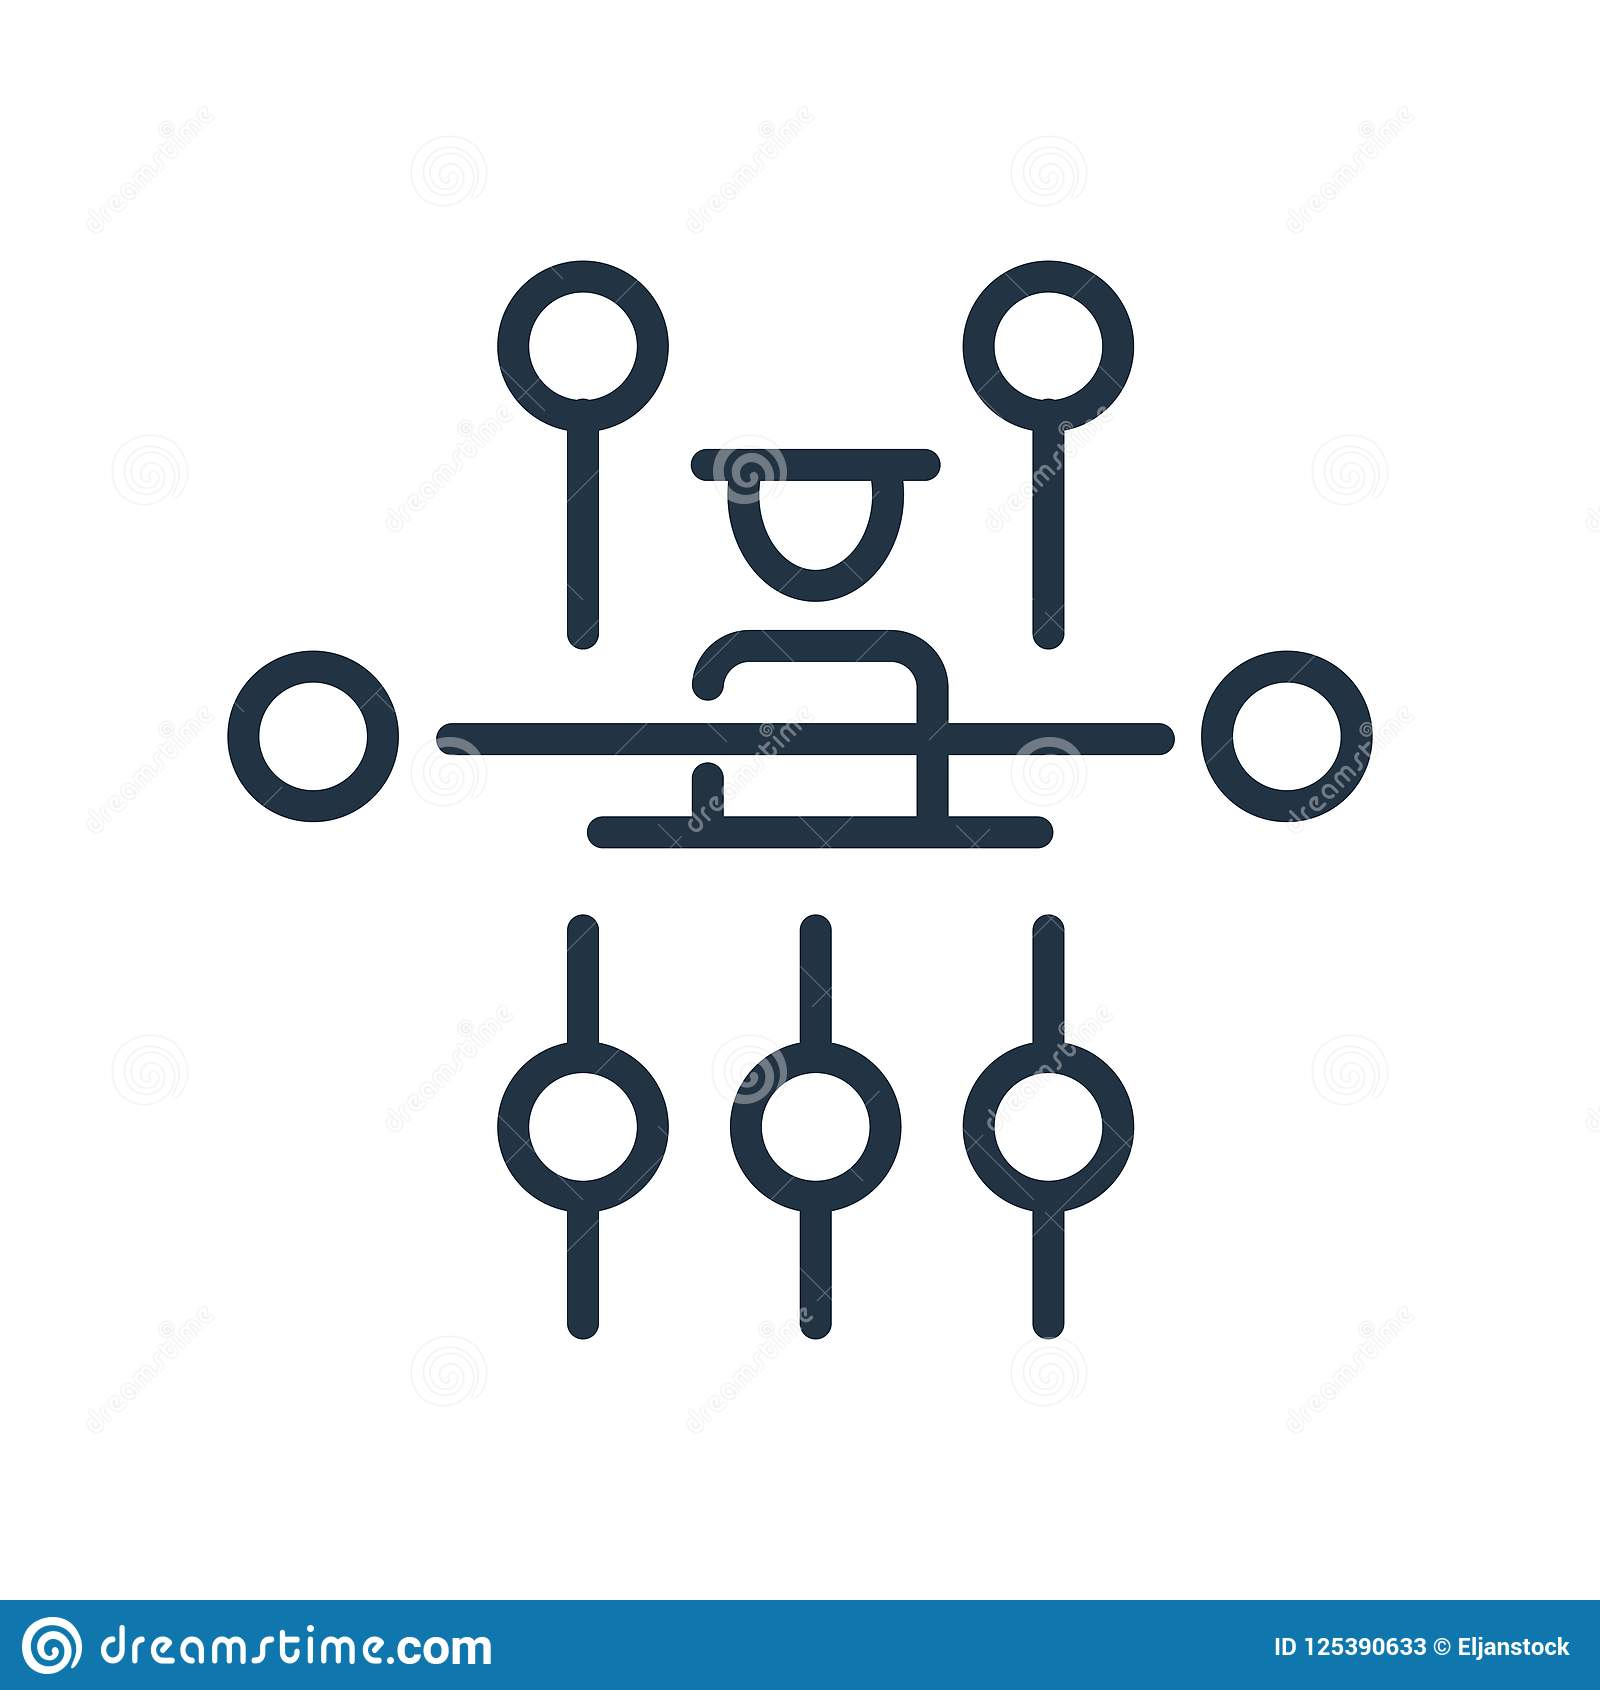 Hierarchical structure icon vector isolated on white background, Hierarchical structure sign , line symbol or linear element